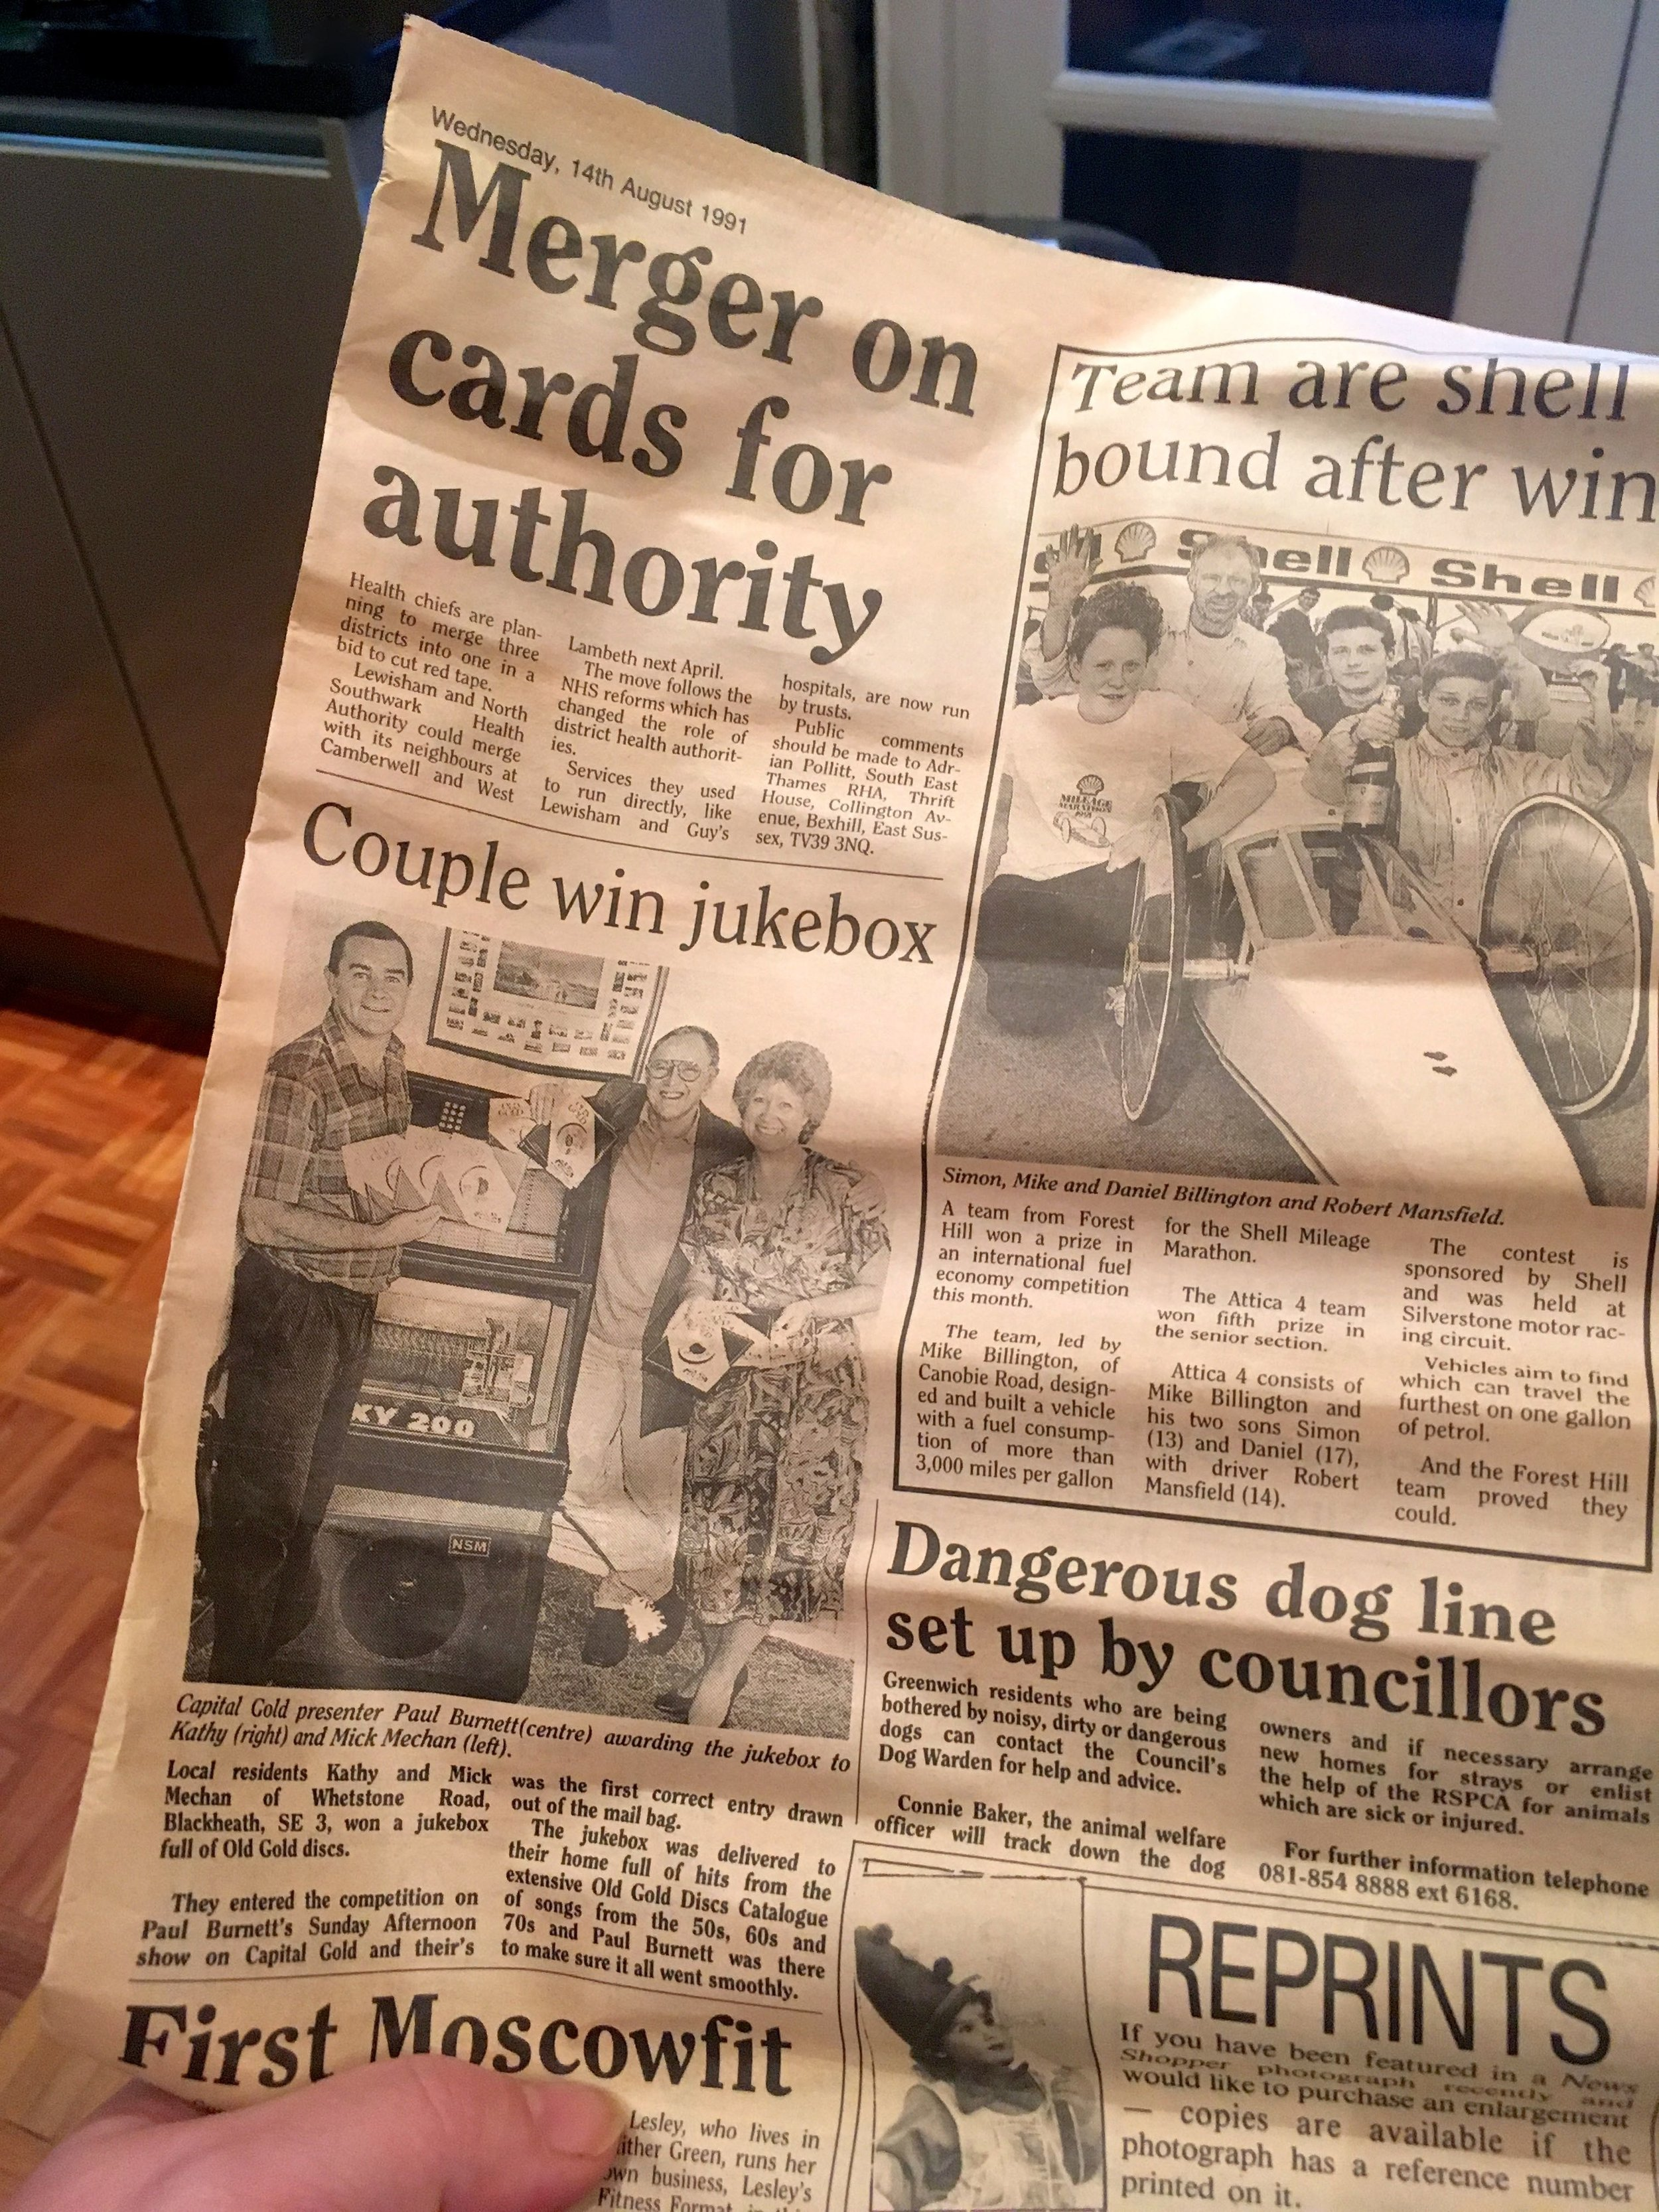 A Newsshoppper (local paper) from 1991